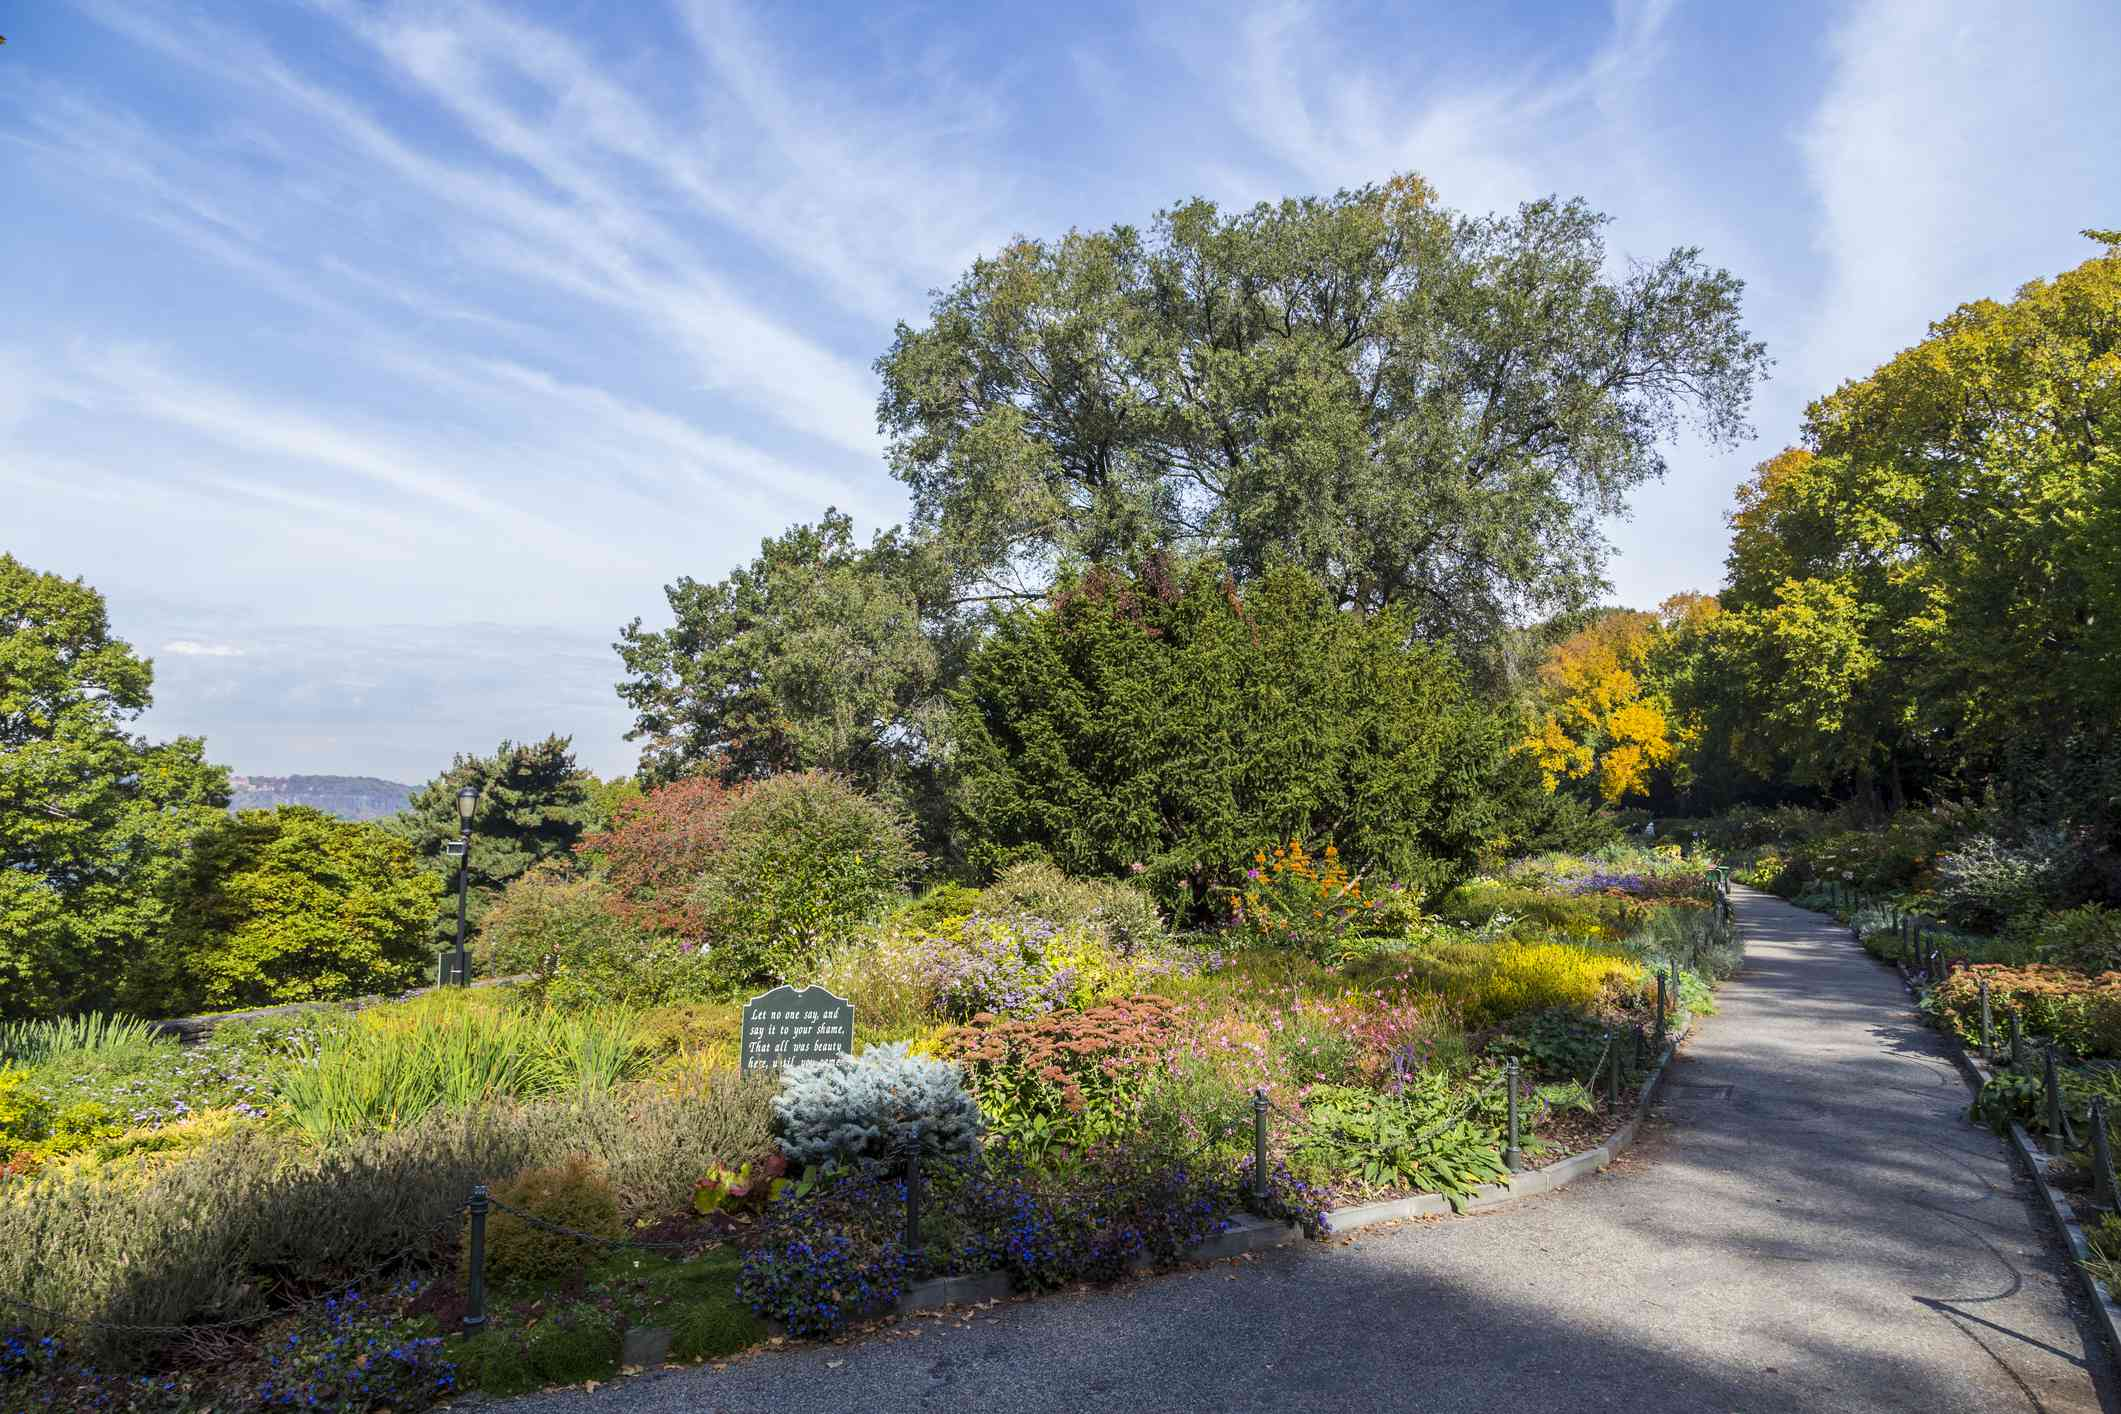 A path through a colorful garden of red, yellow, and green low plants with tall, full green trees in the distance and a blue sky streaked with white clouds